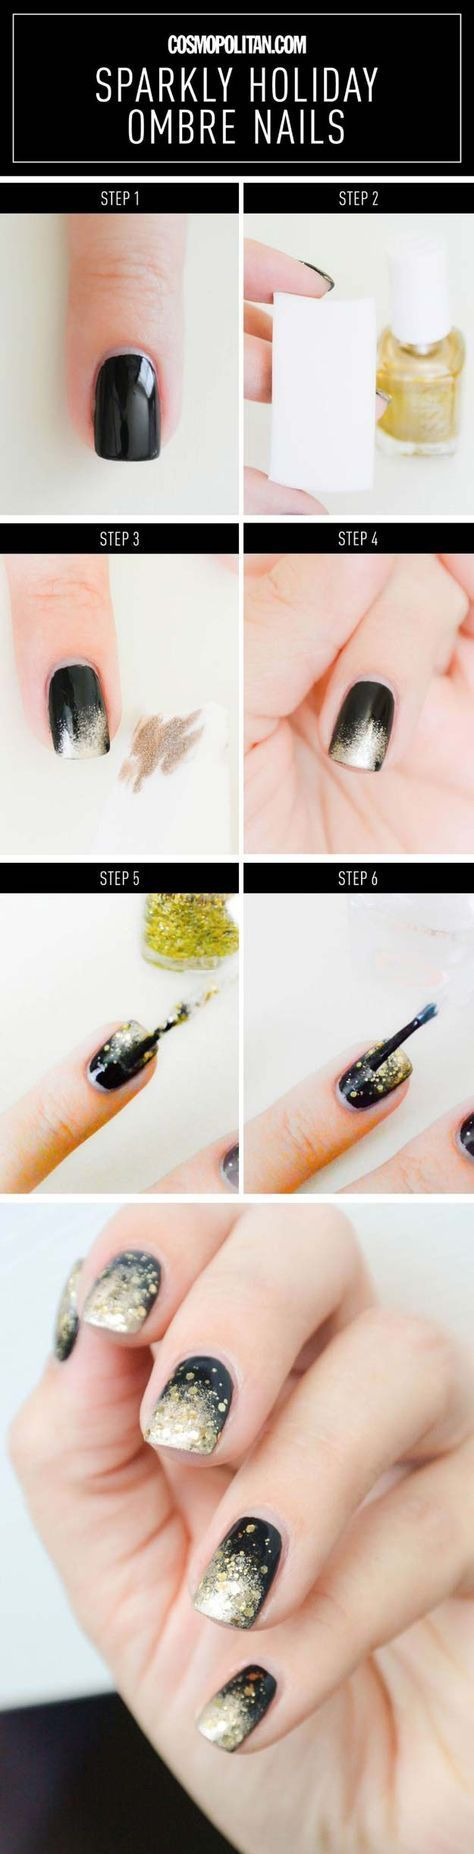 36 Best Tutorials For Ombre Nails Step Guide Manicure And Ombre